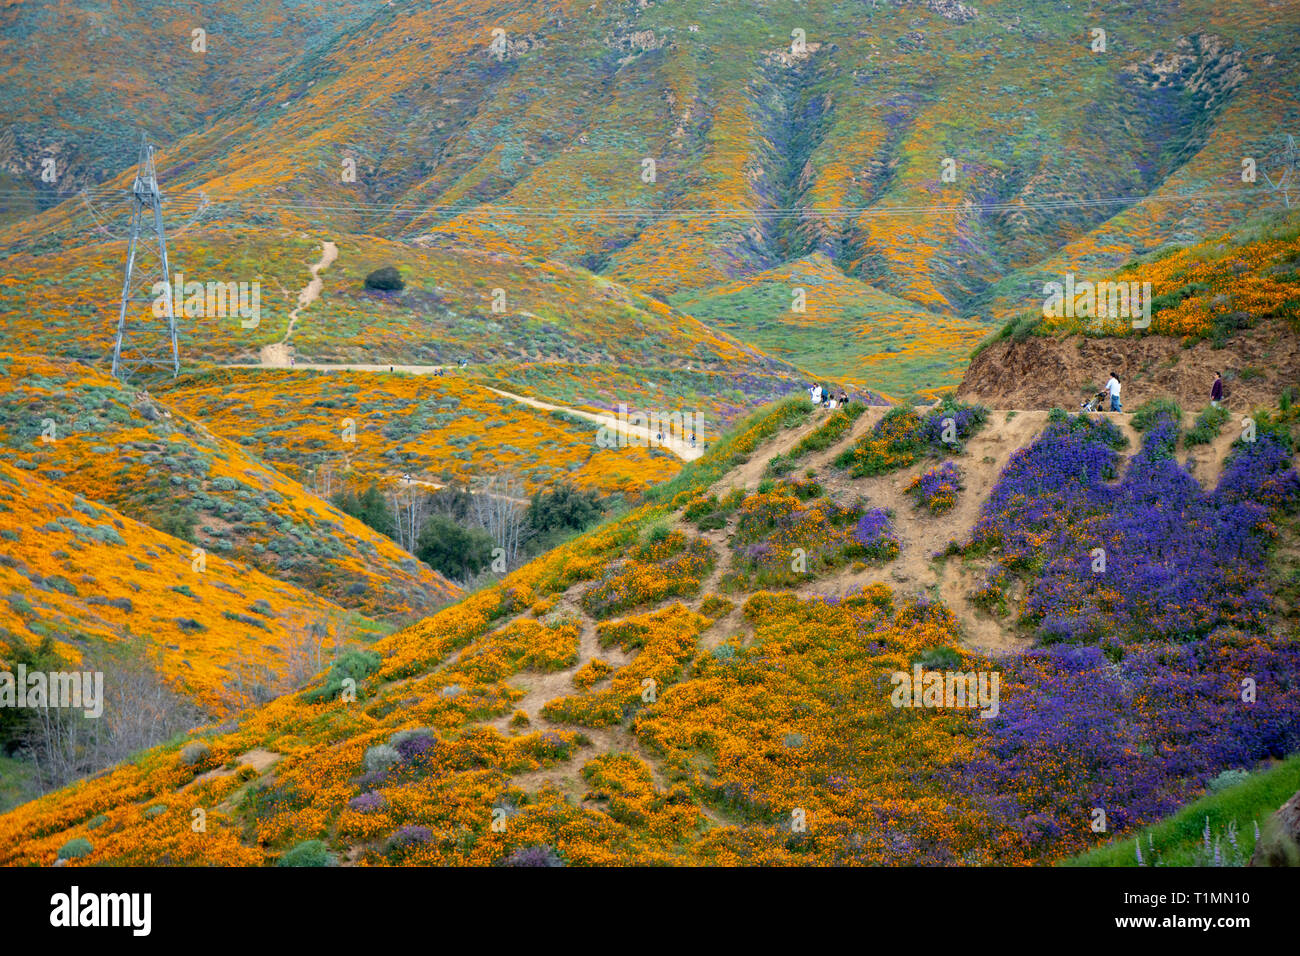 Lake Elsinore, California - March 20, 2019: Tourists take photos and walk the trail at Walker Canyon, admiring the wildflowers and poppies during the  - Stock Image